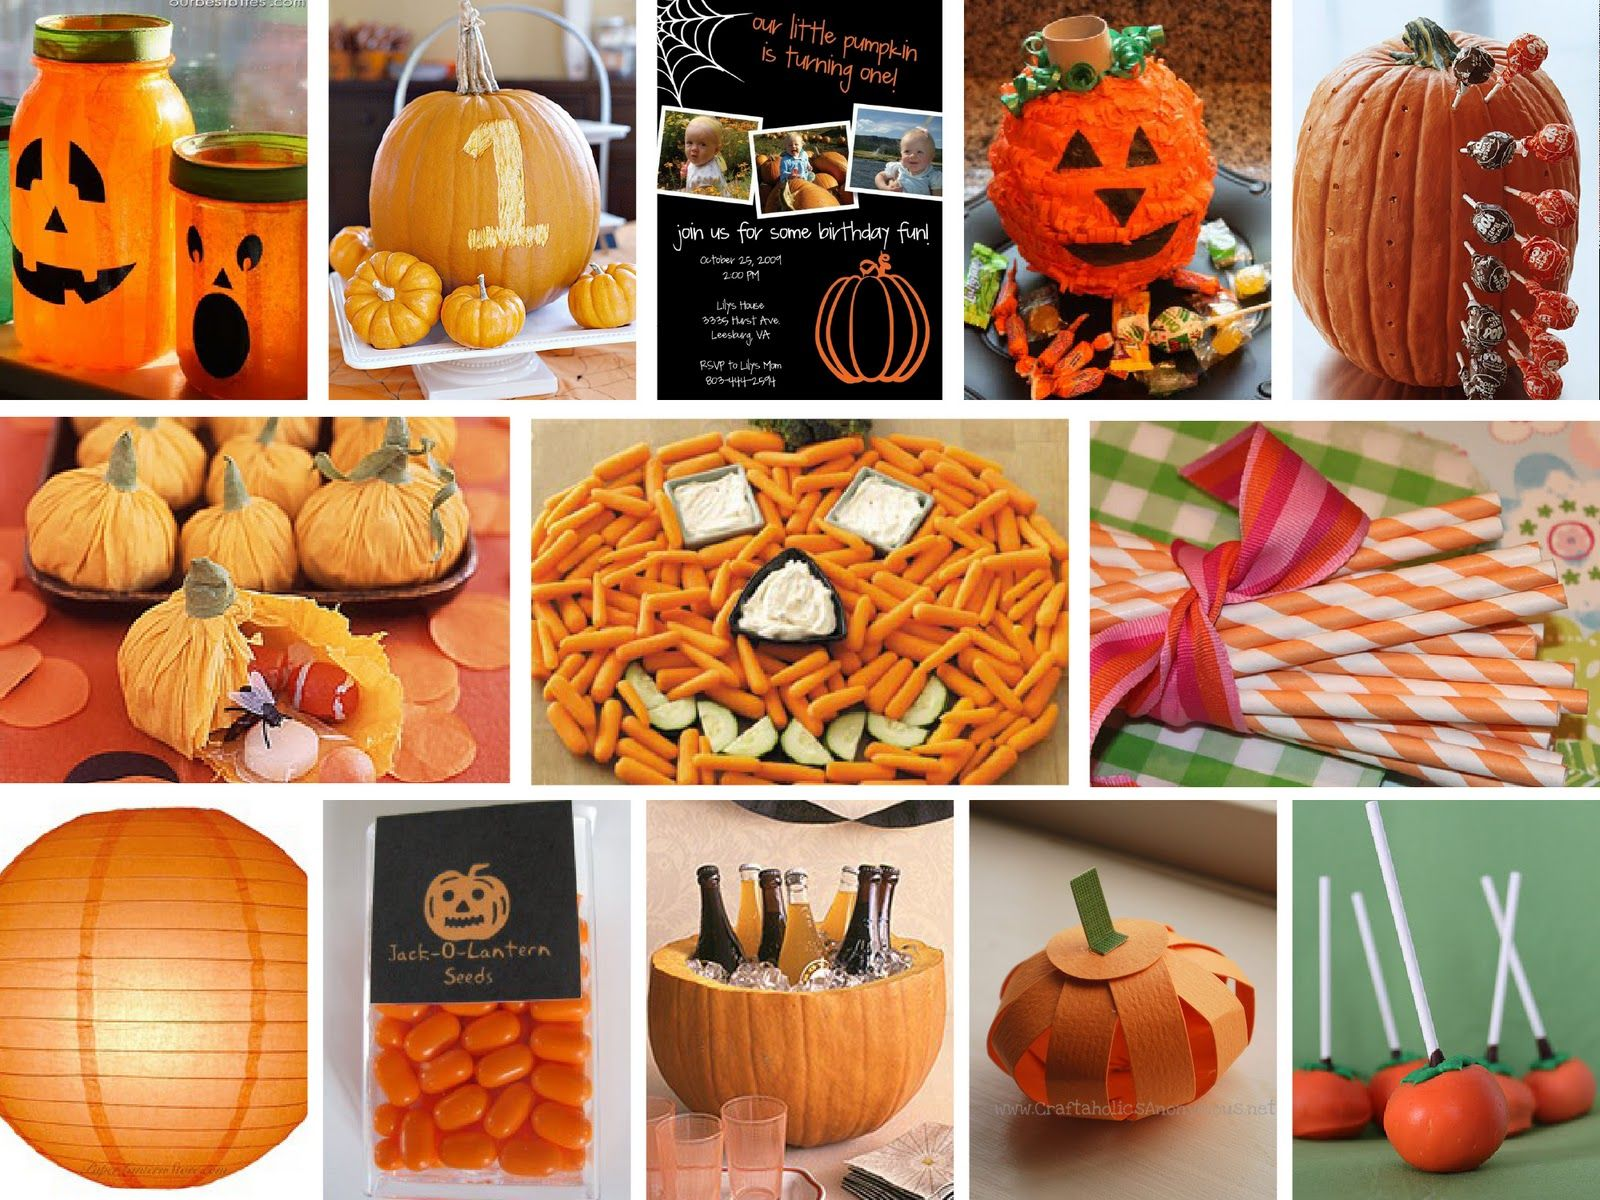 SHARE YOUR BIRTHDAY IDEAS ! pictures! - Page 14 | Halloween themes ...